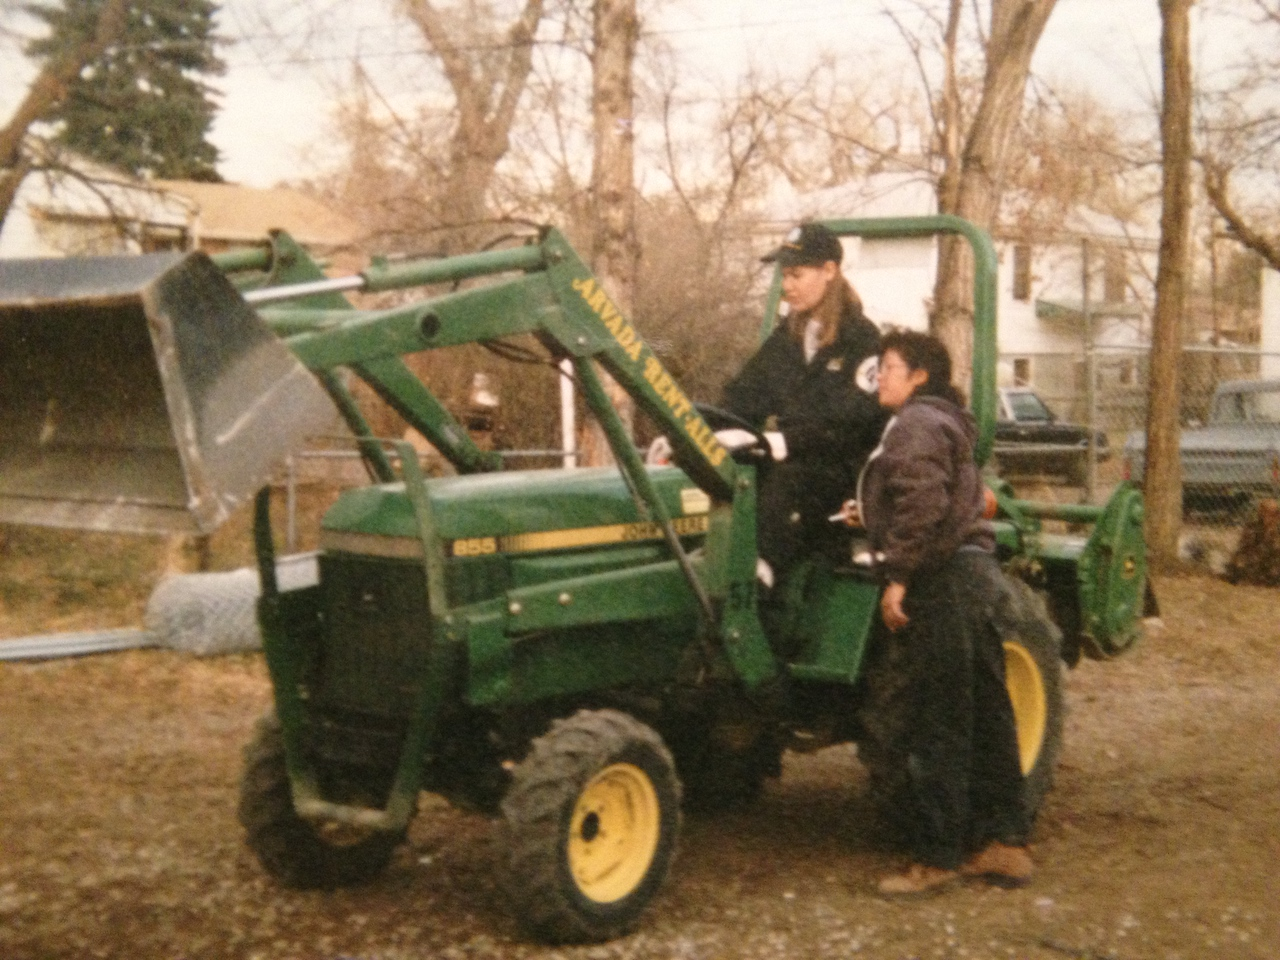 Rebecca Lange operates a tractor during her term of service with AmeriCorps NCCC from 1995-96.